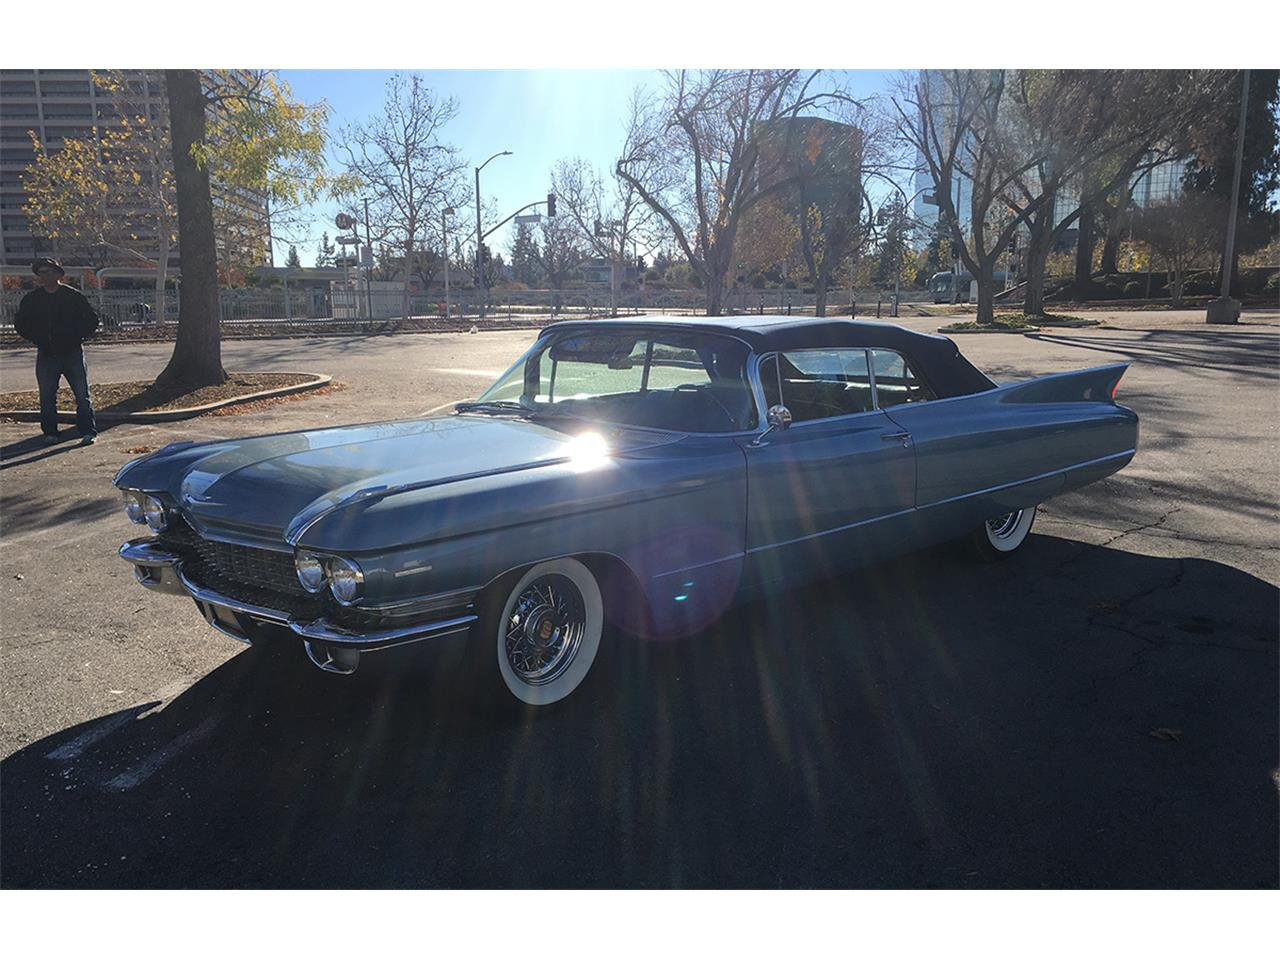 1960 Cadillac Coupe Deville For Sale: 1960 Cadillac Coupe DeVille Convertable For Sale